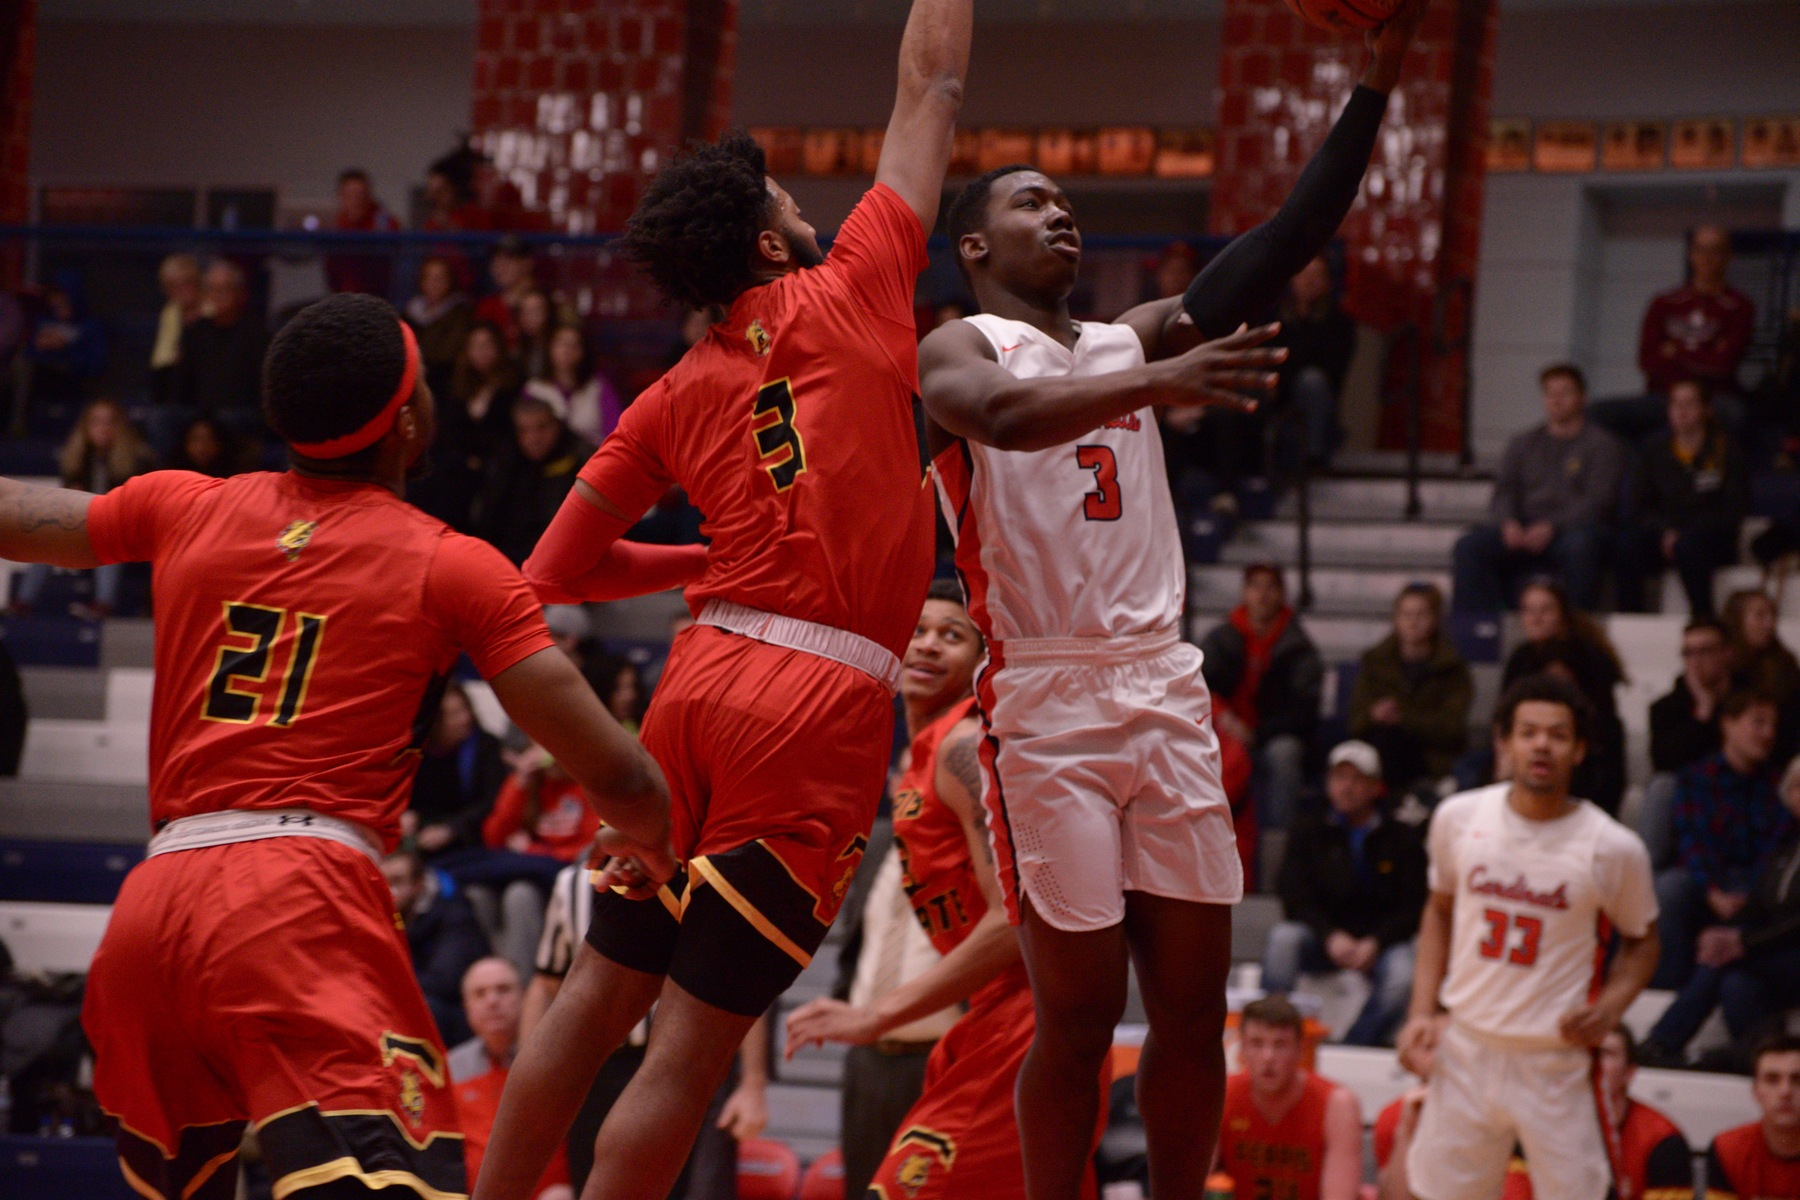 Cardinals drop GLIAC tilt to Lakers, 87-72